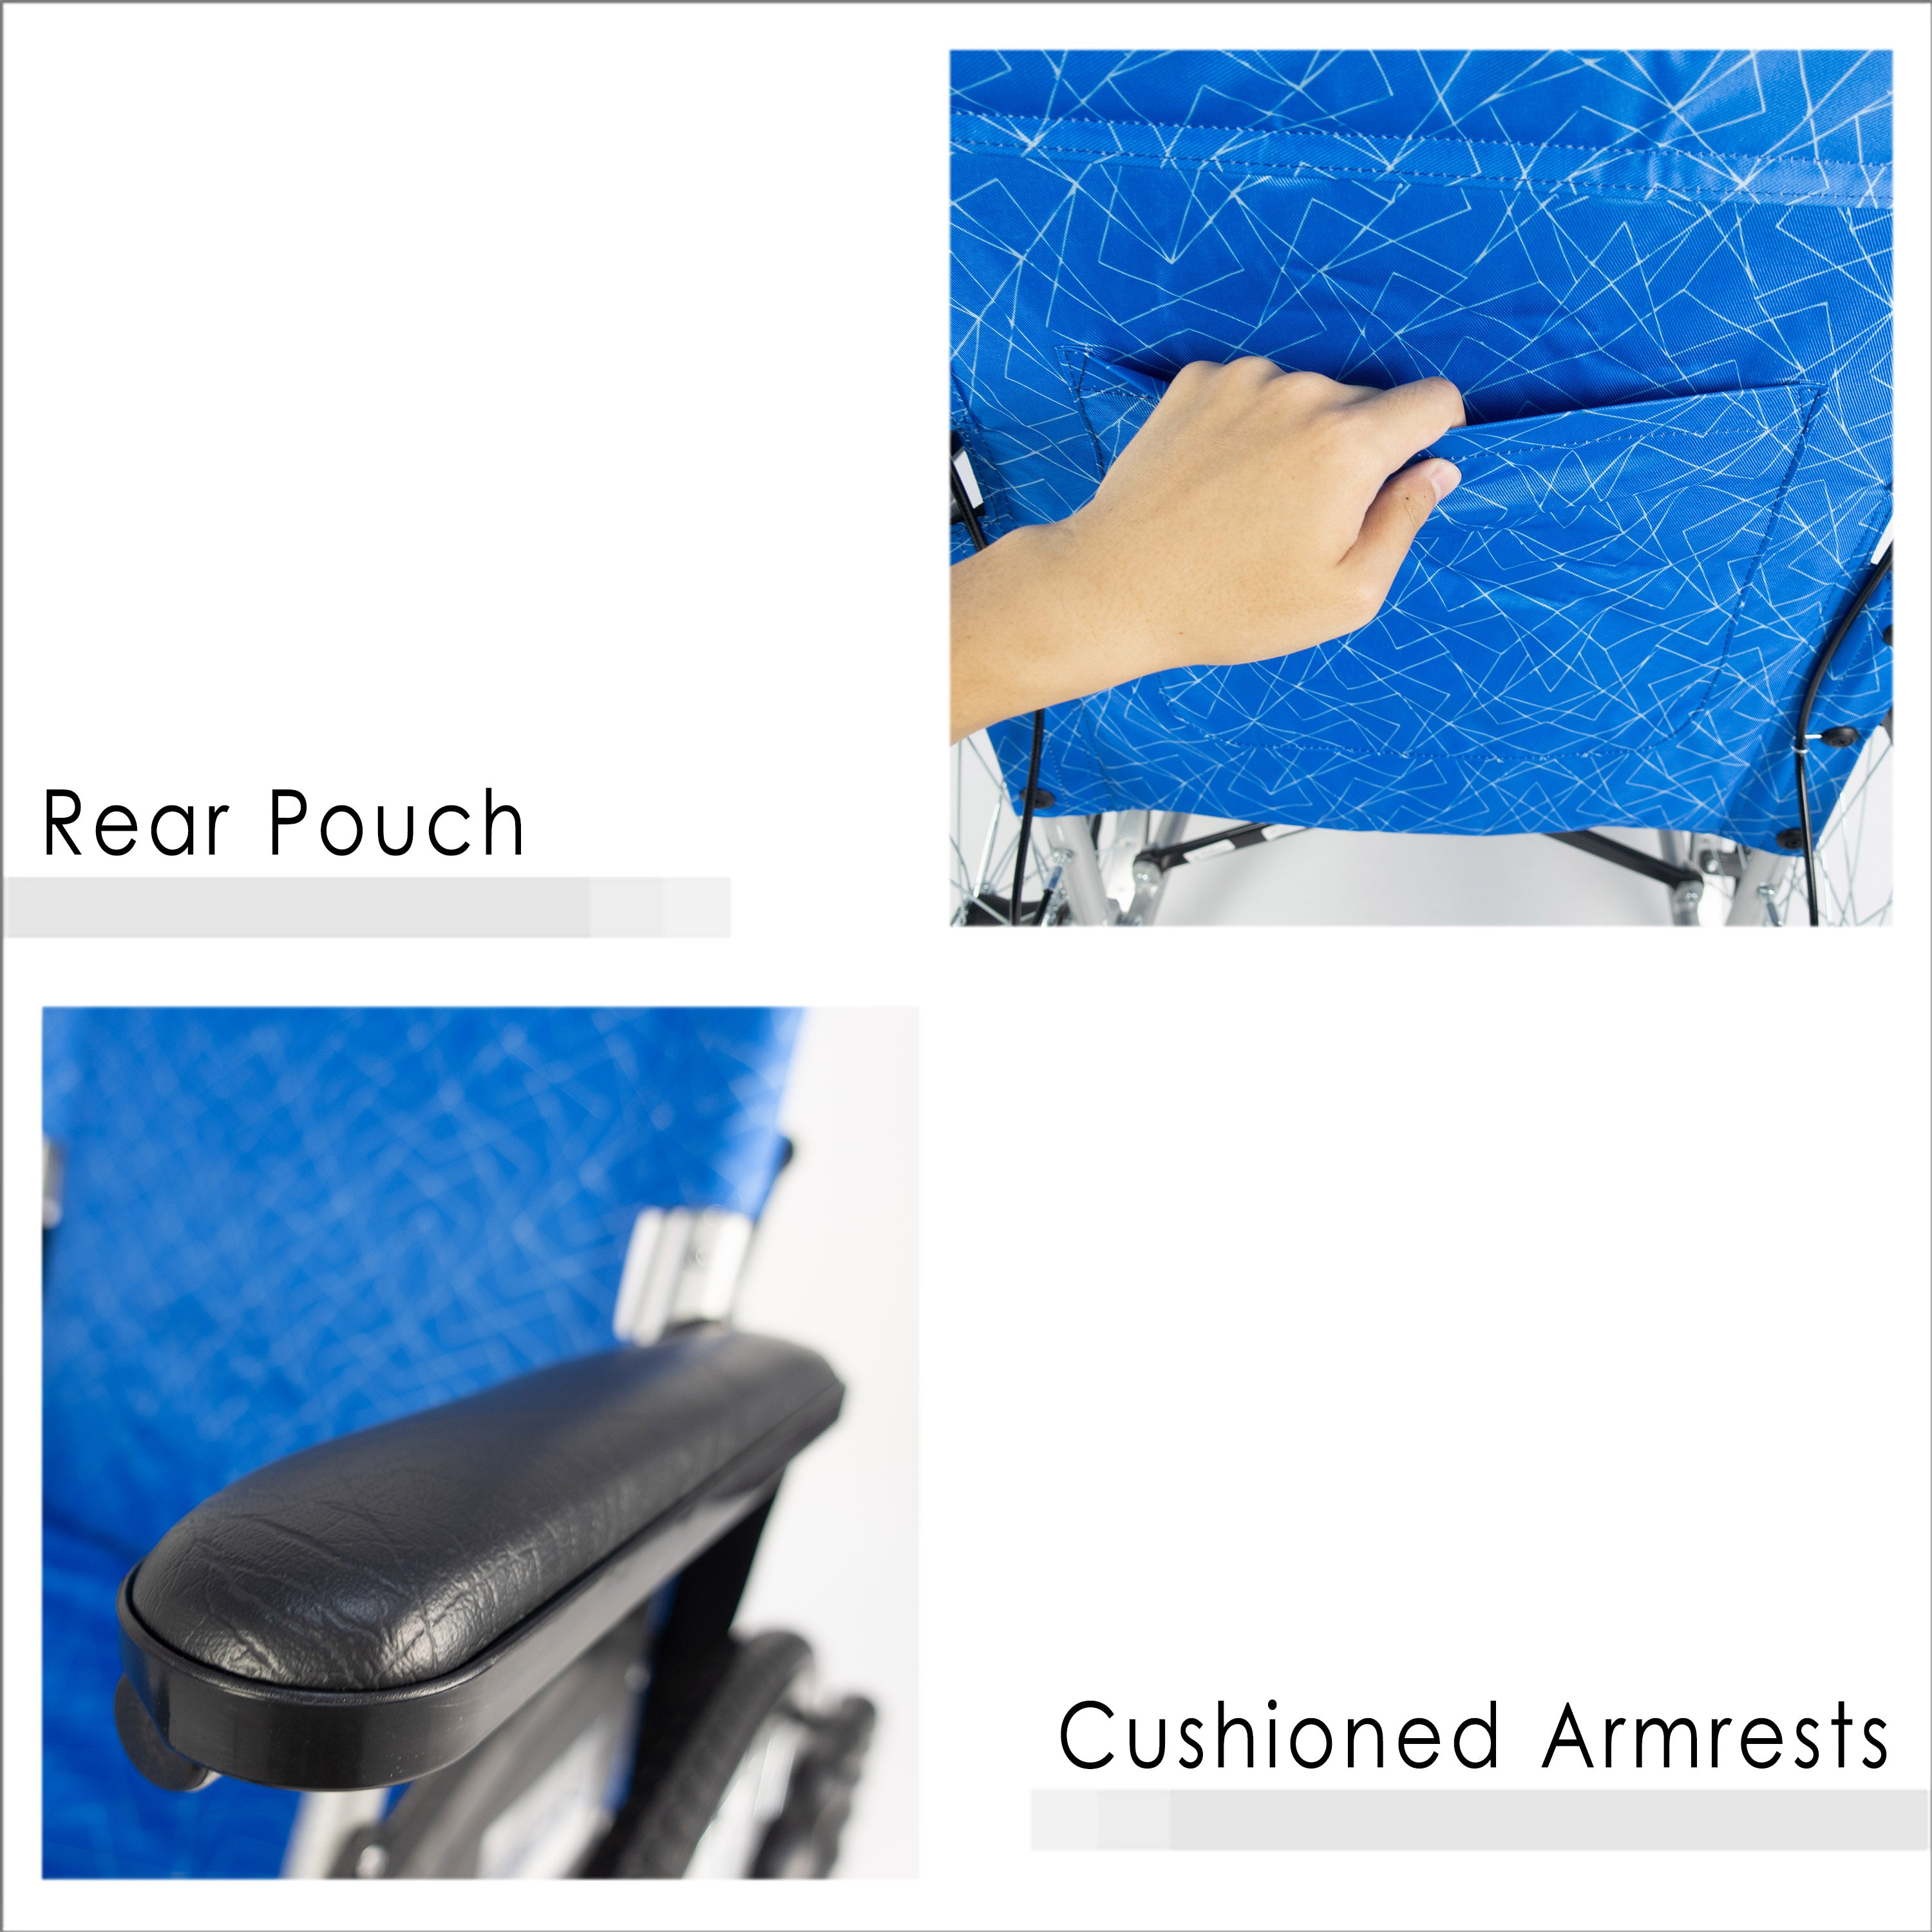 Rear Pouch & Cushioned Armrests